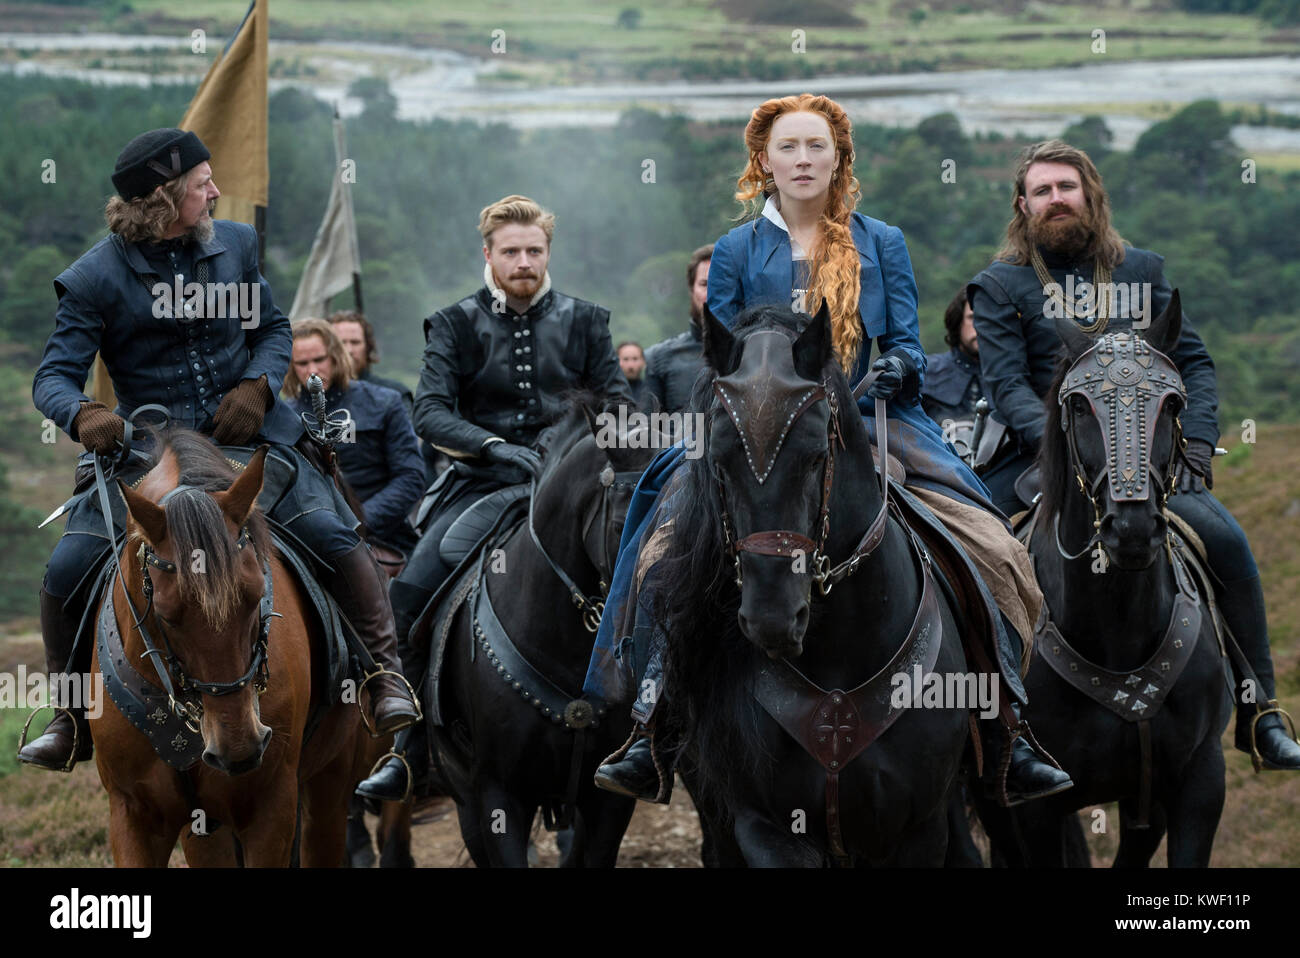 RELEASE DATE: November 2, 2018 TITLE: Mary Queen Of Scots STUDIO: Focus Features DIRECTOR: Josie Rourke PLOT: Mary Stock Photo